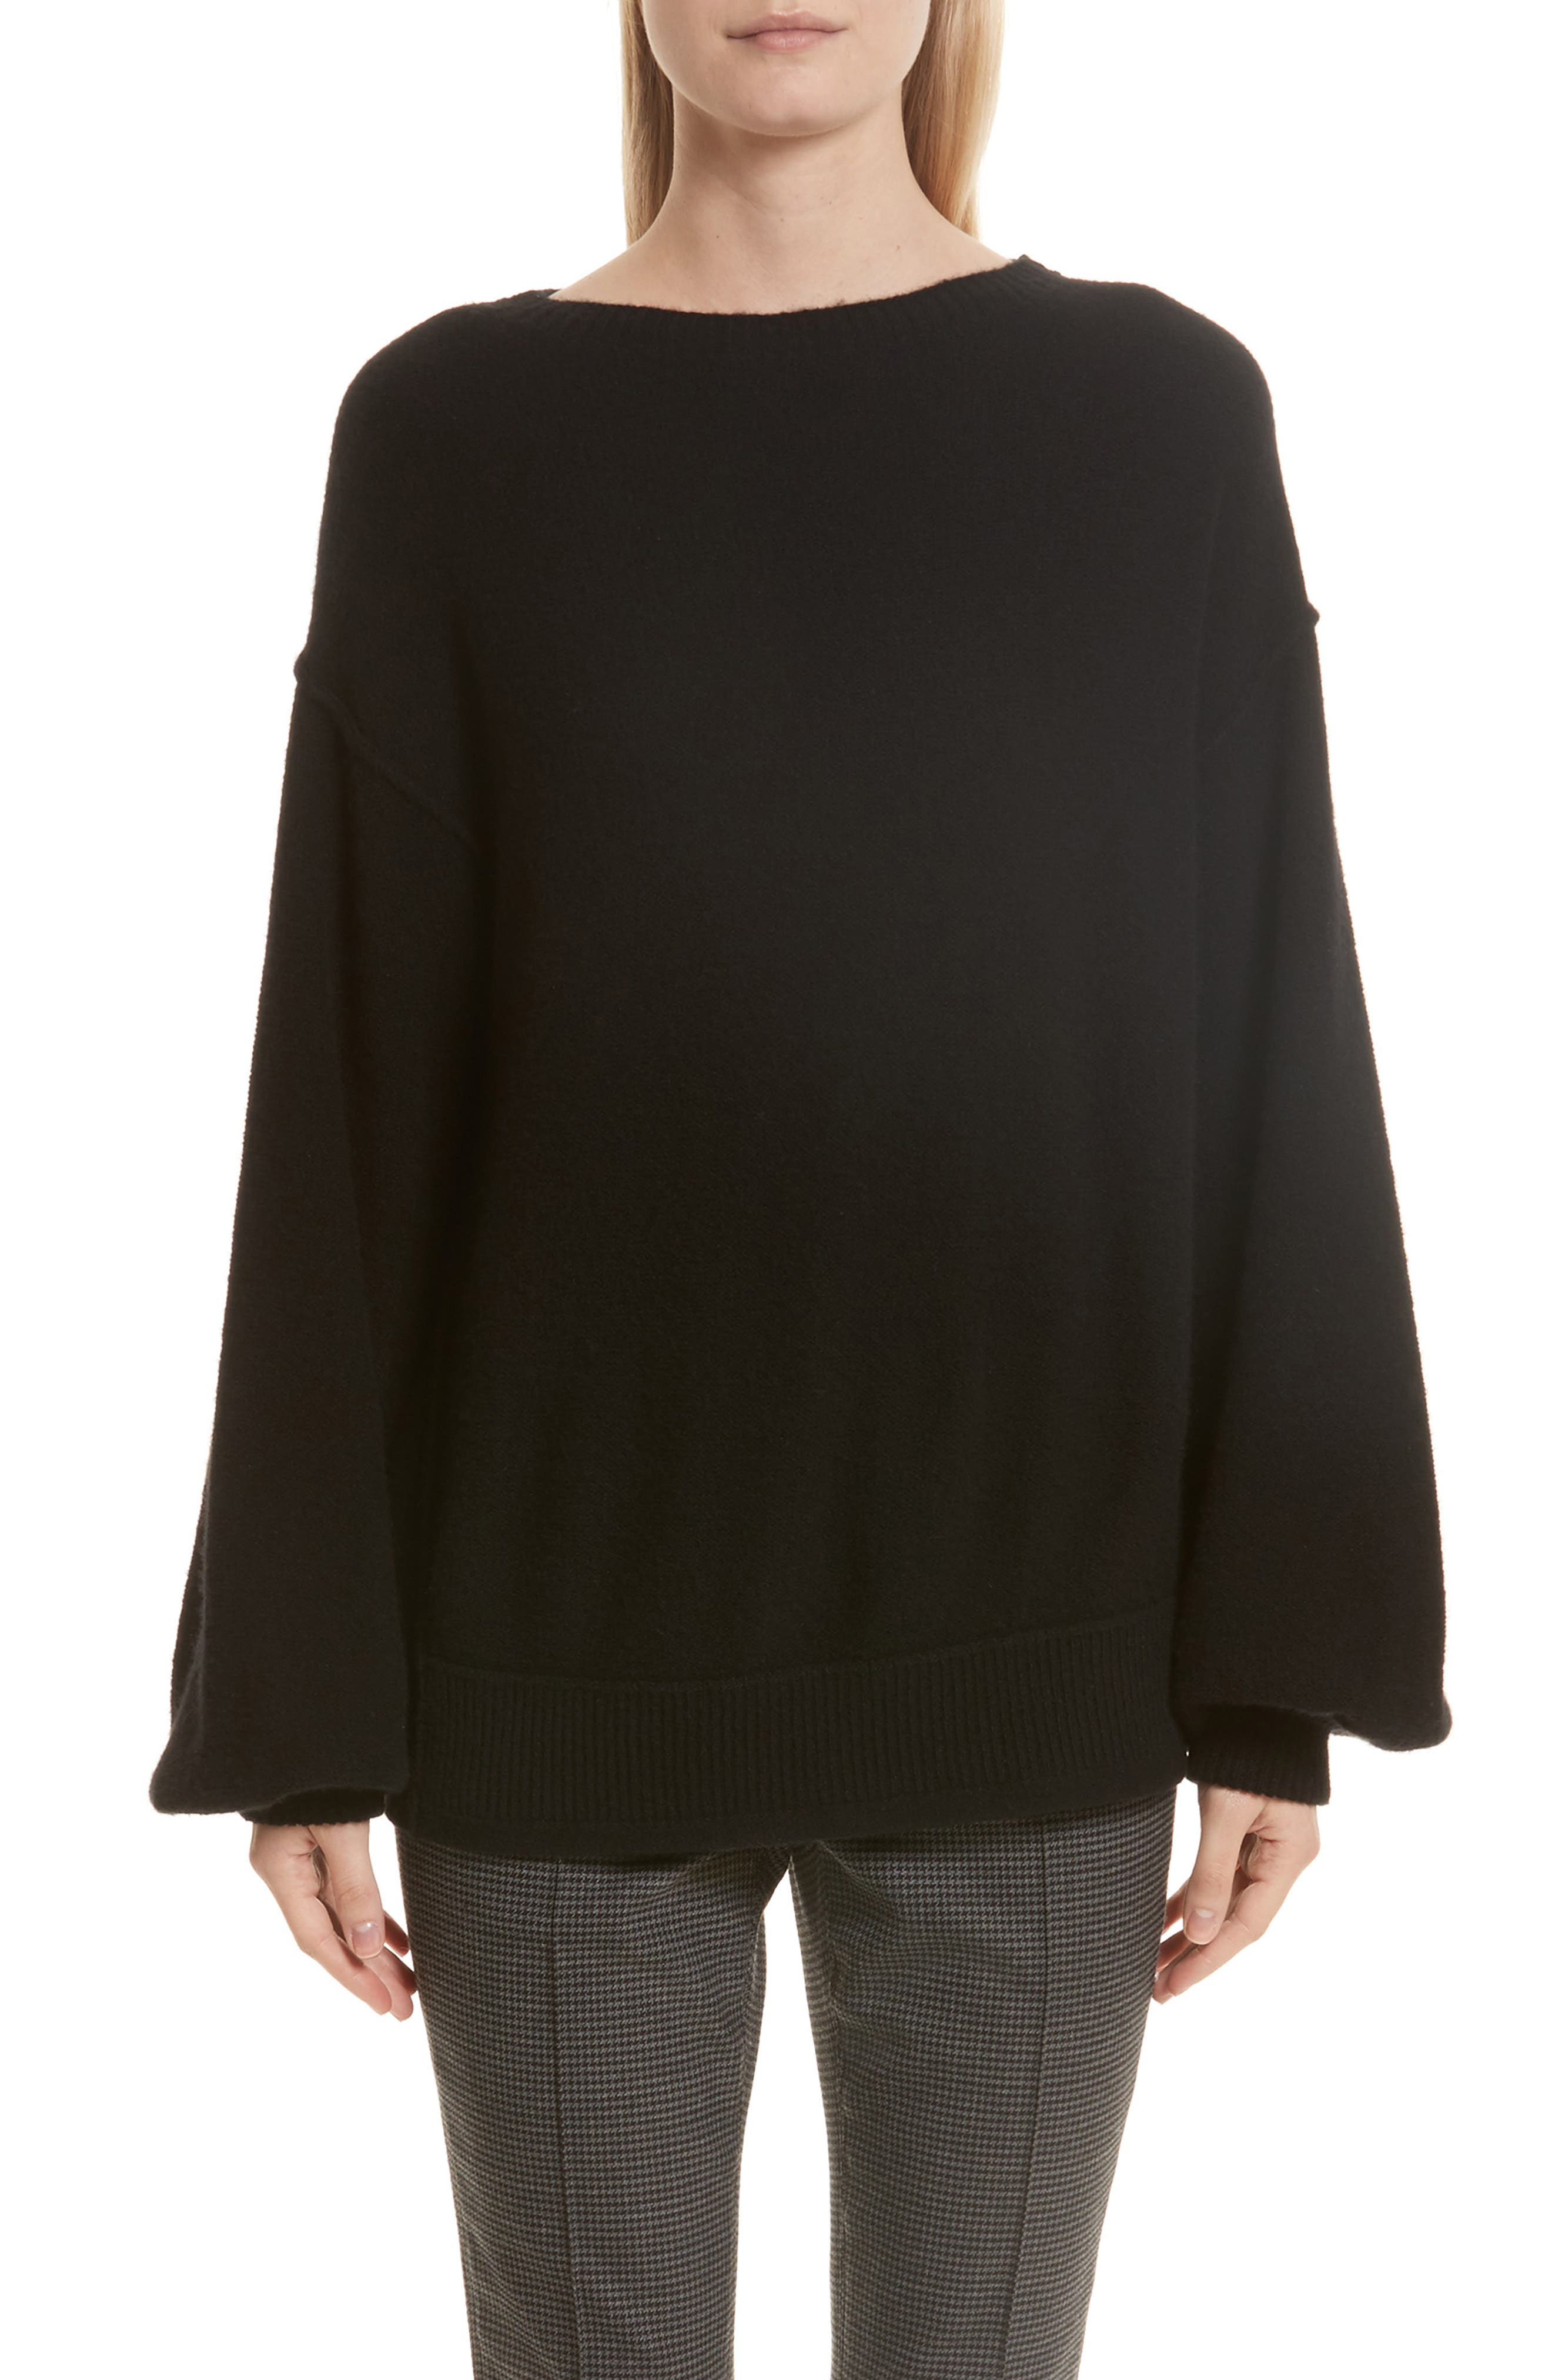 Alternate Image 1 Selected - Helmut Lang Balloon Sleeve Wool & Cashmere Sweater